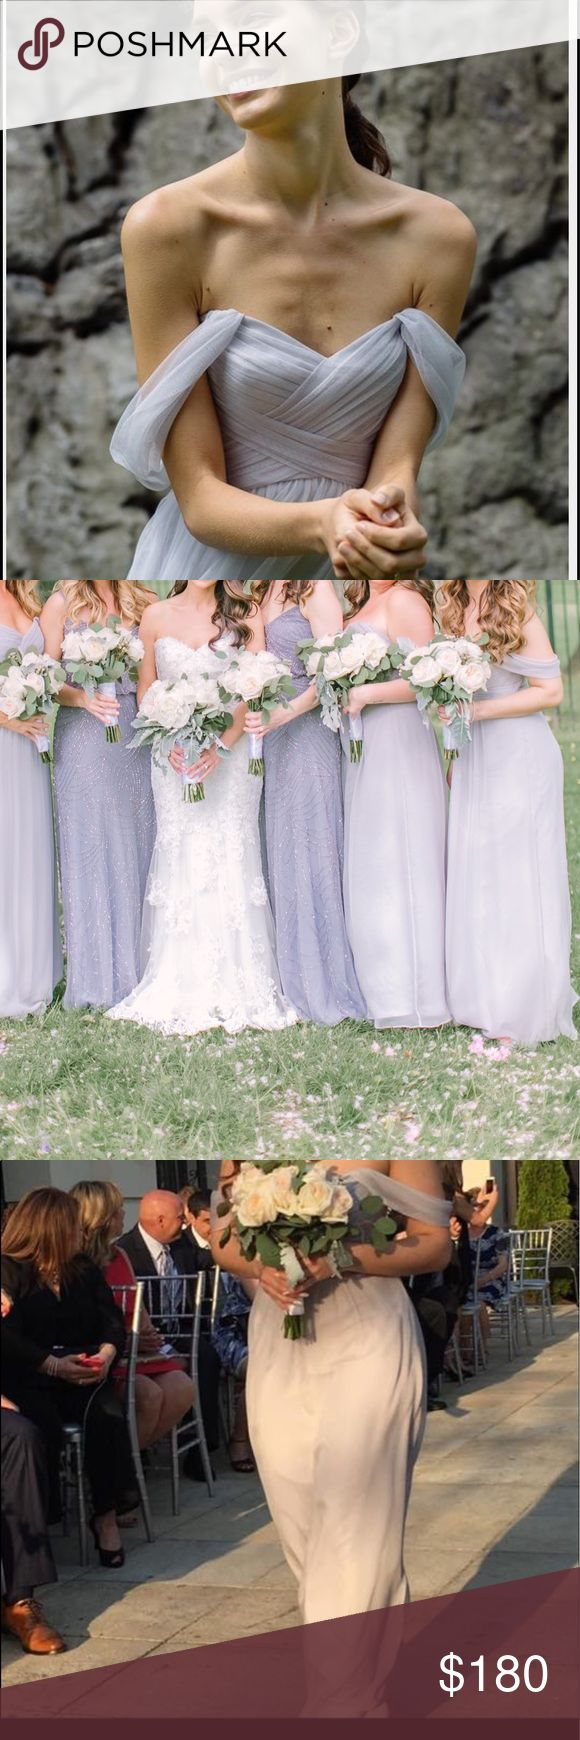 """Amsale convertible crinkled silk chiffon gown Amsale bridesmaid dress in """"Dove"""". Last picture is not color just style. Size 6, only hemmed to fit height of 5'3"""" with 4"""" shoes. No stains or rips, cleaned. Amsale Dresses Wedding"""